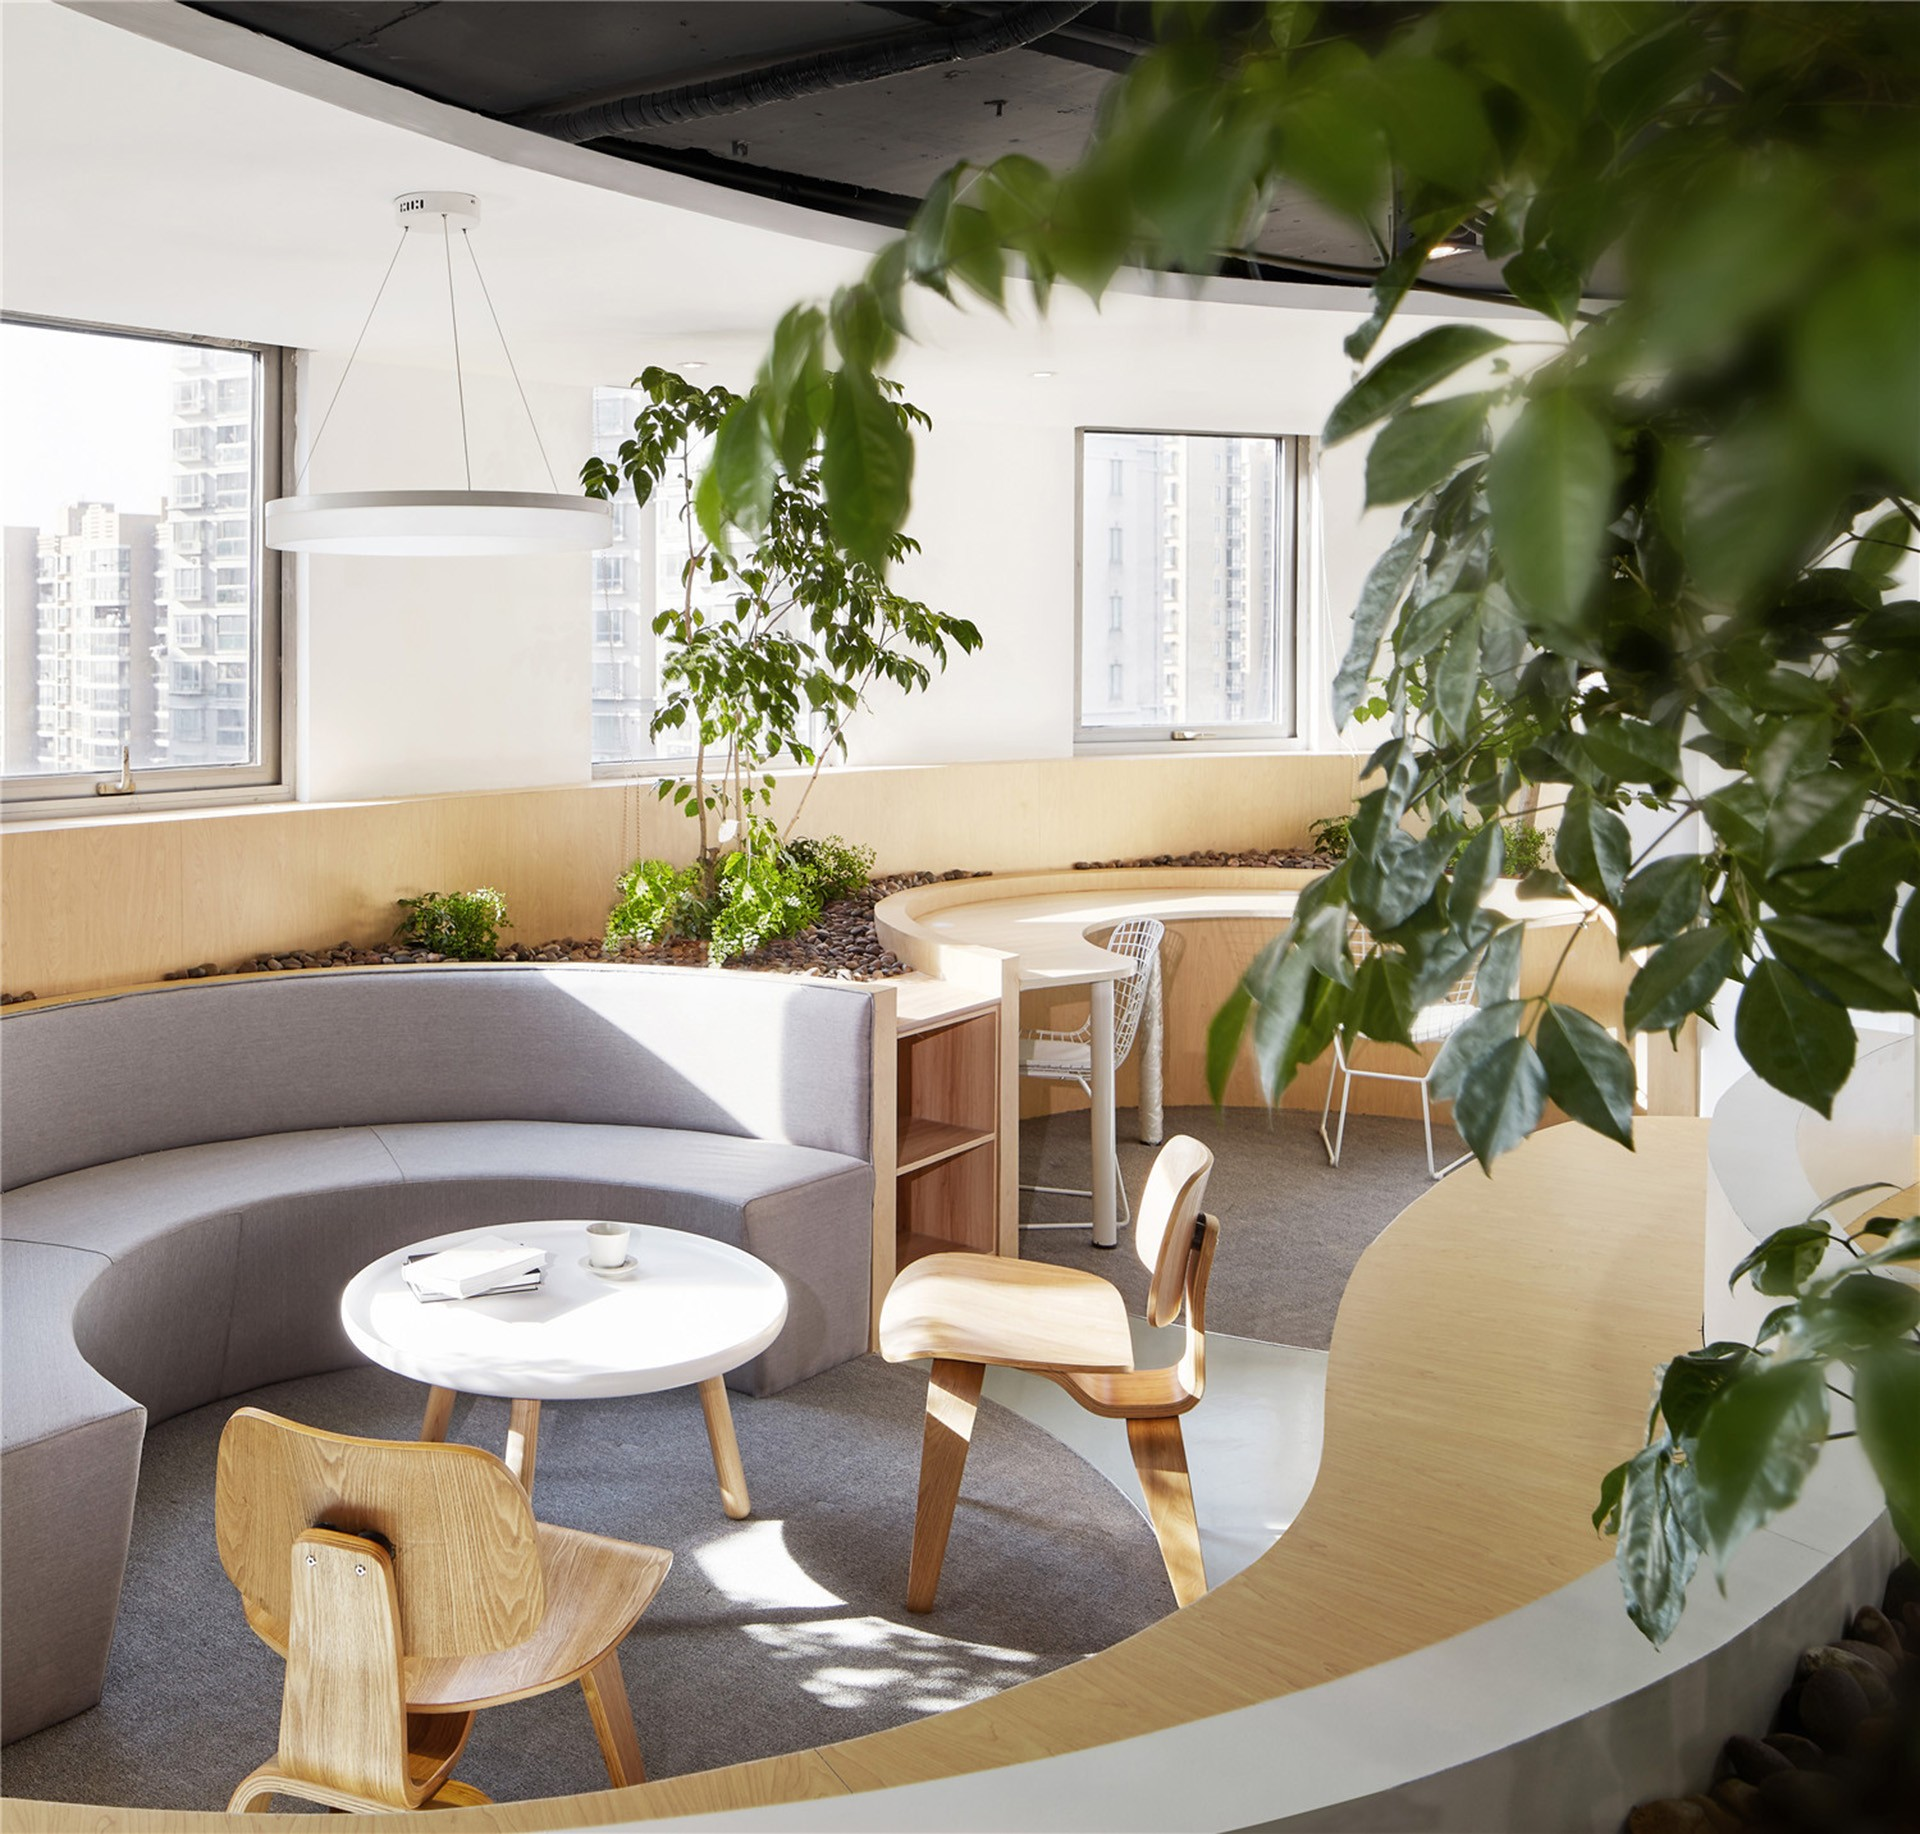 Celebrating nature. An office by Muxin Design and Research